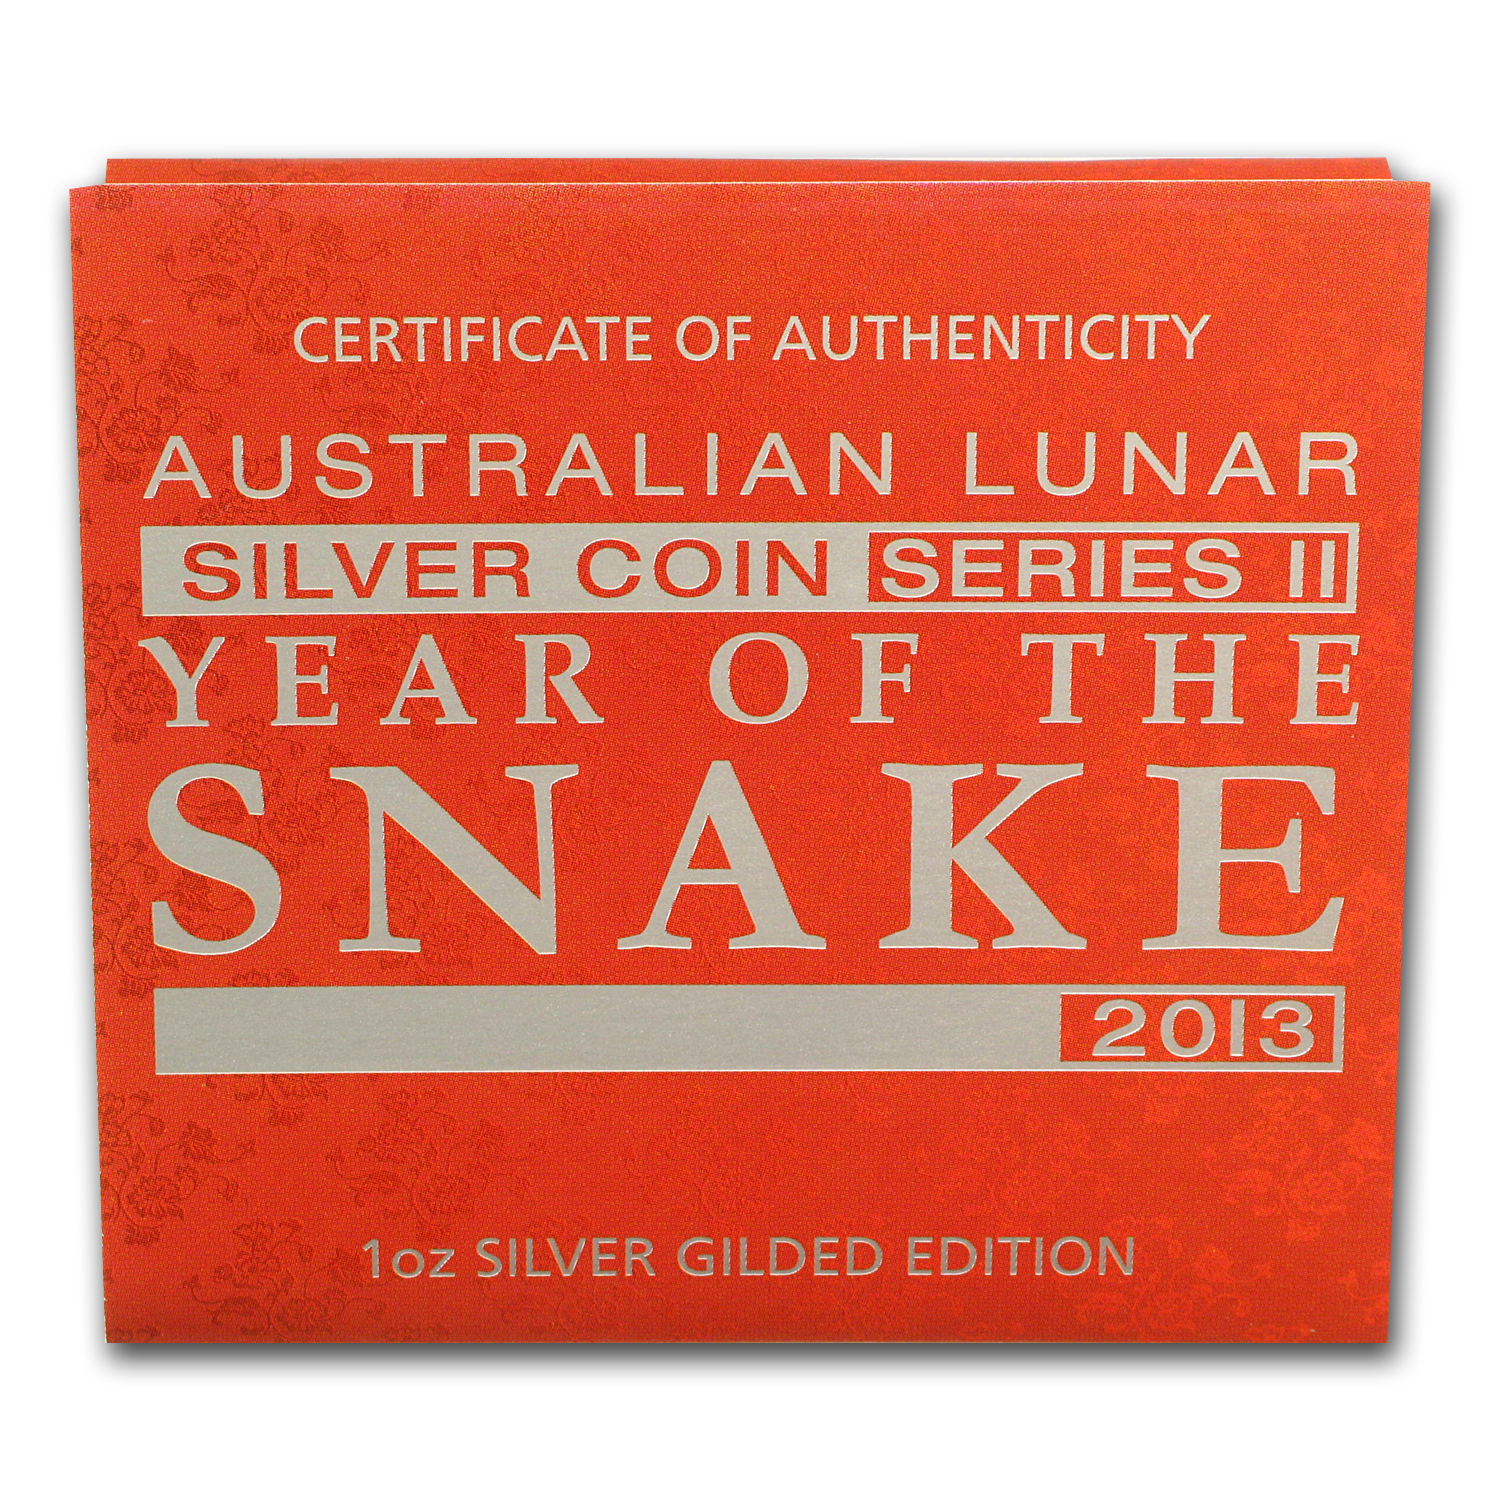 2013 Year of the Snake - 1 oz Gilded Silver (SII) (Capsule)